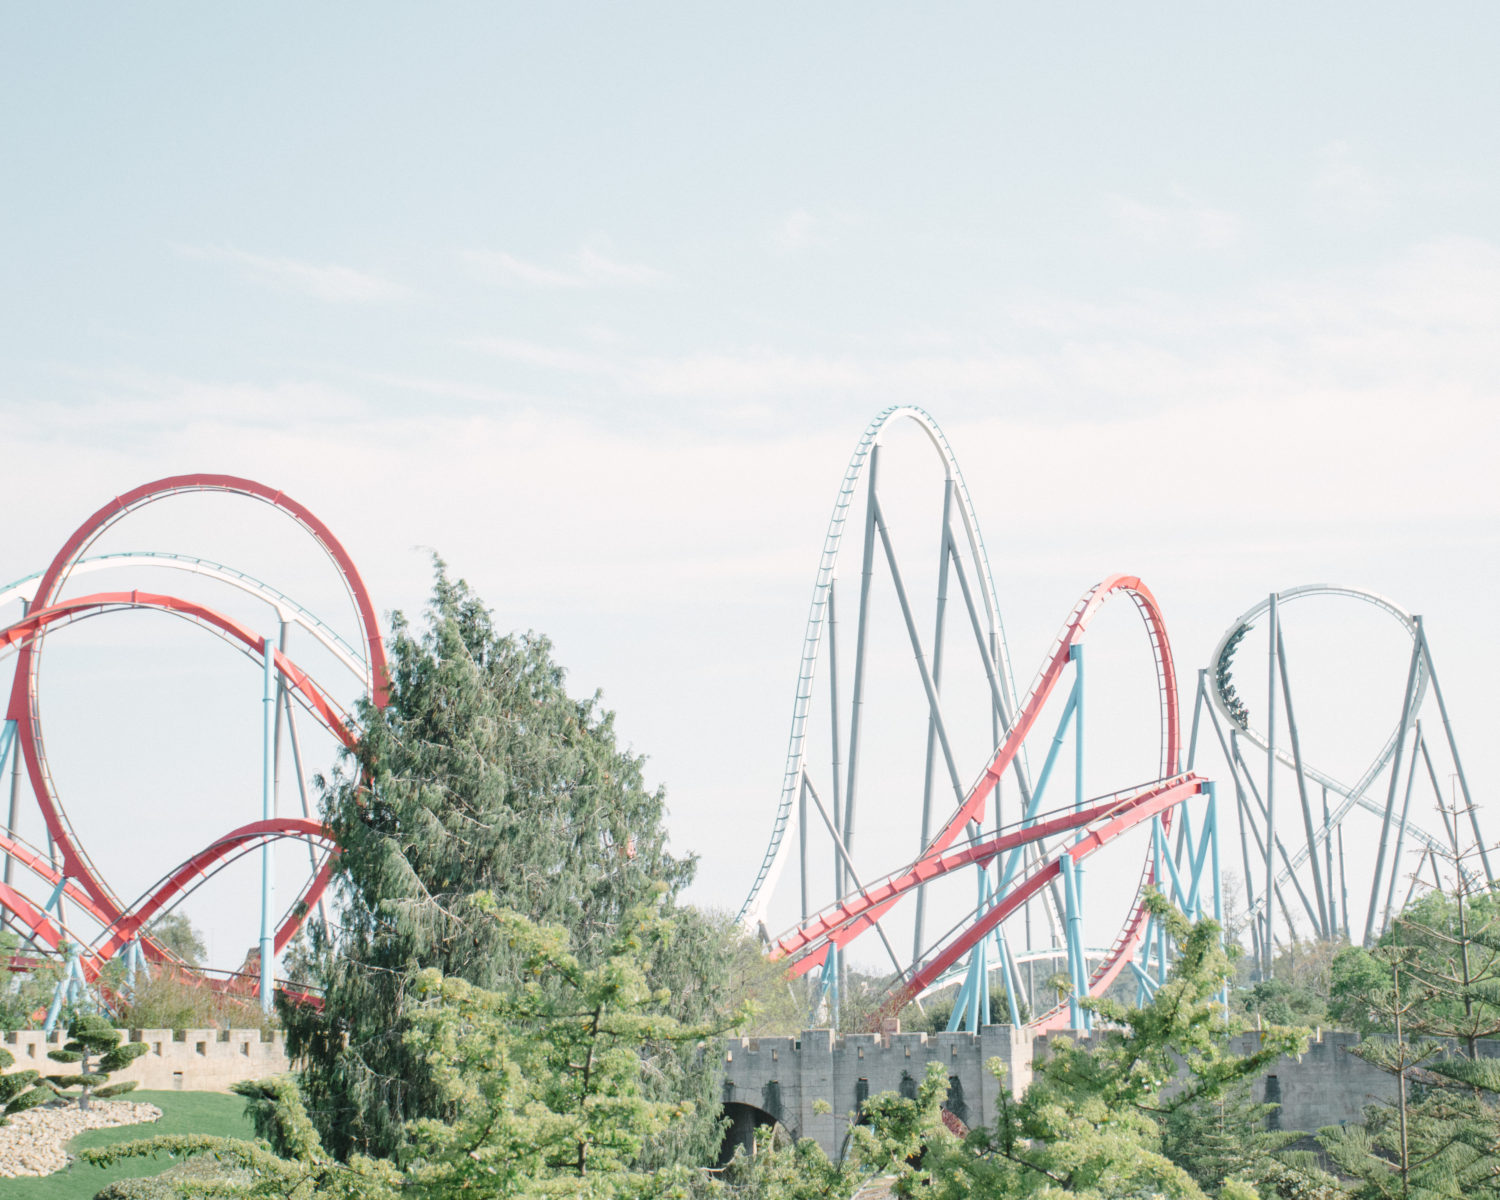 Europe's tallest roller coaster, Shambala, and Dragon Khan, at Port Aventura World, Spain.